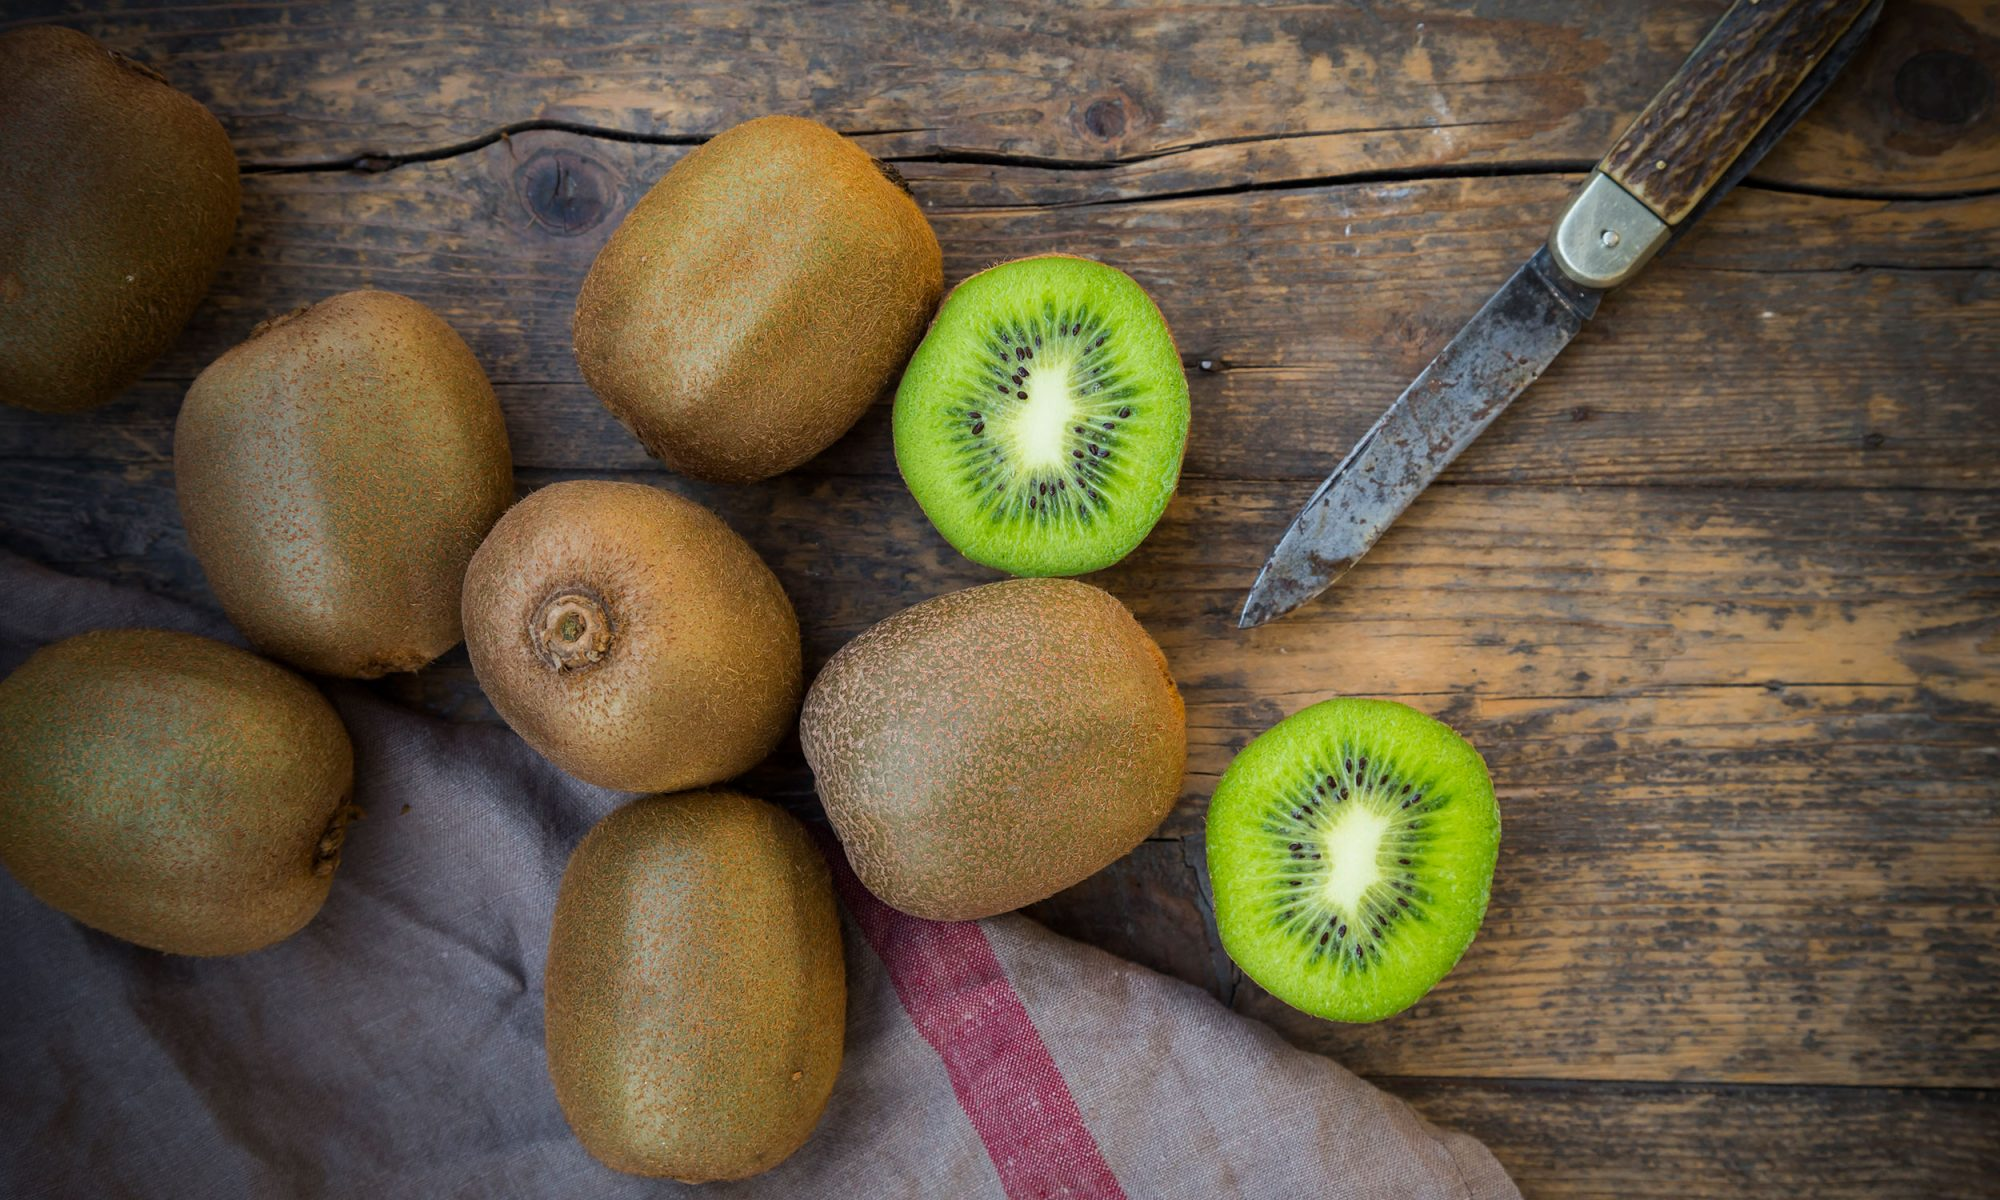 EC: Is It Safe to Eat the Skin of a Kiwi?